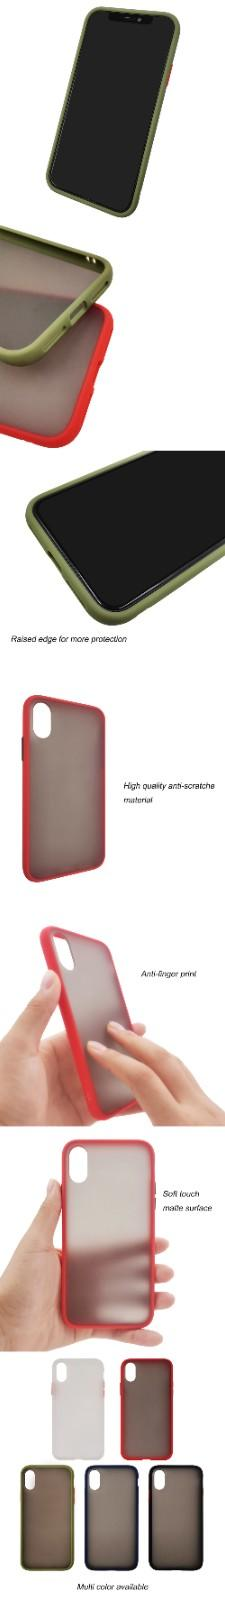 TenChen Tech rubber iphone case series for household-1